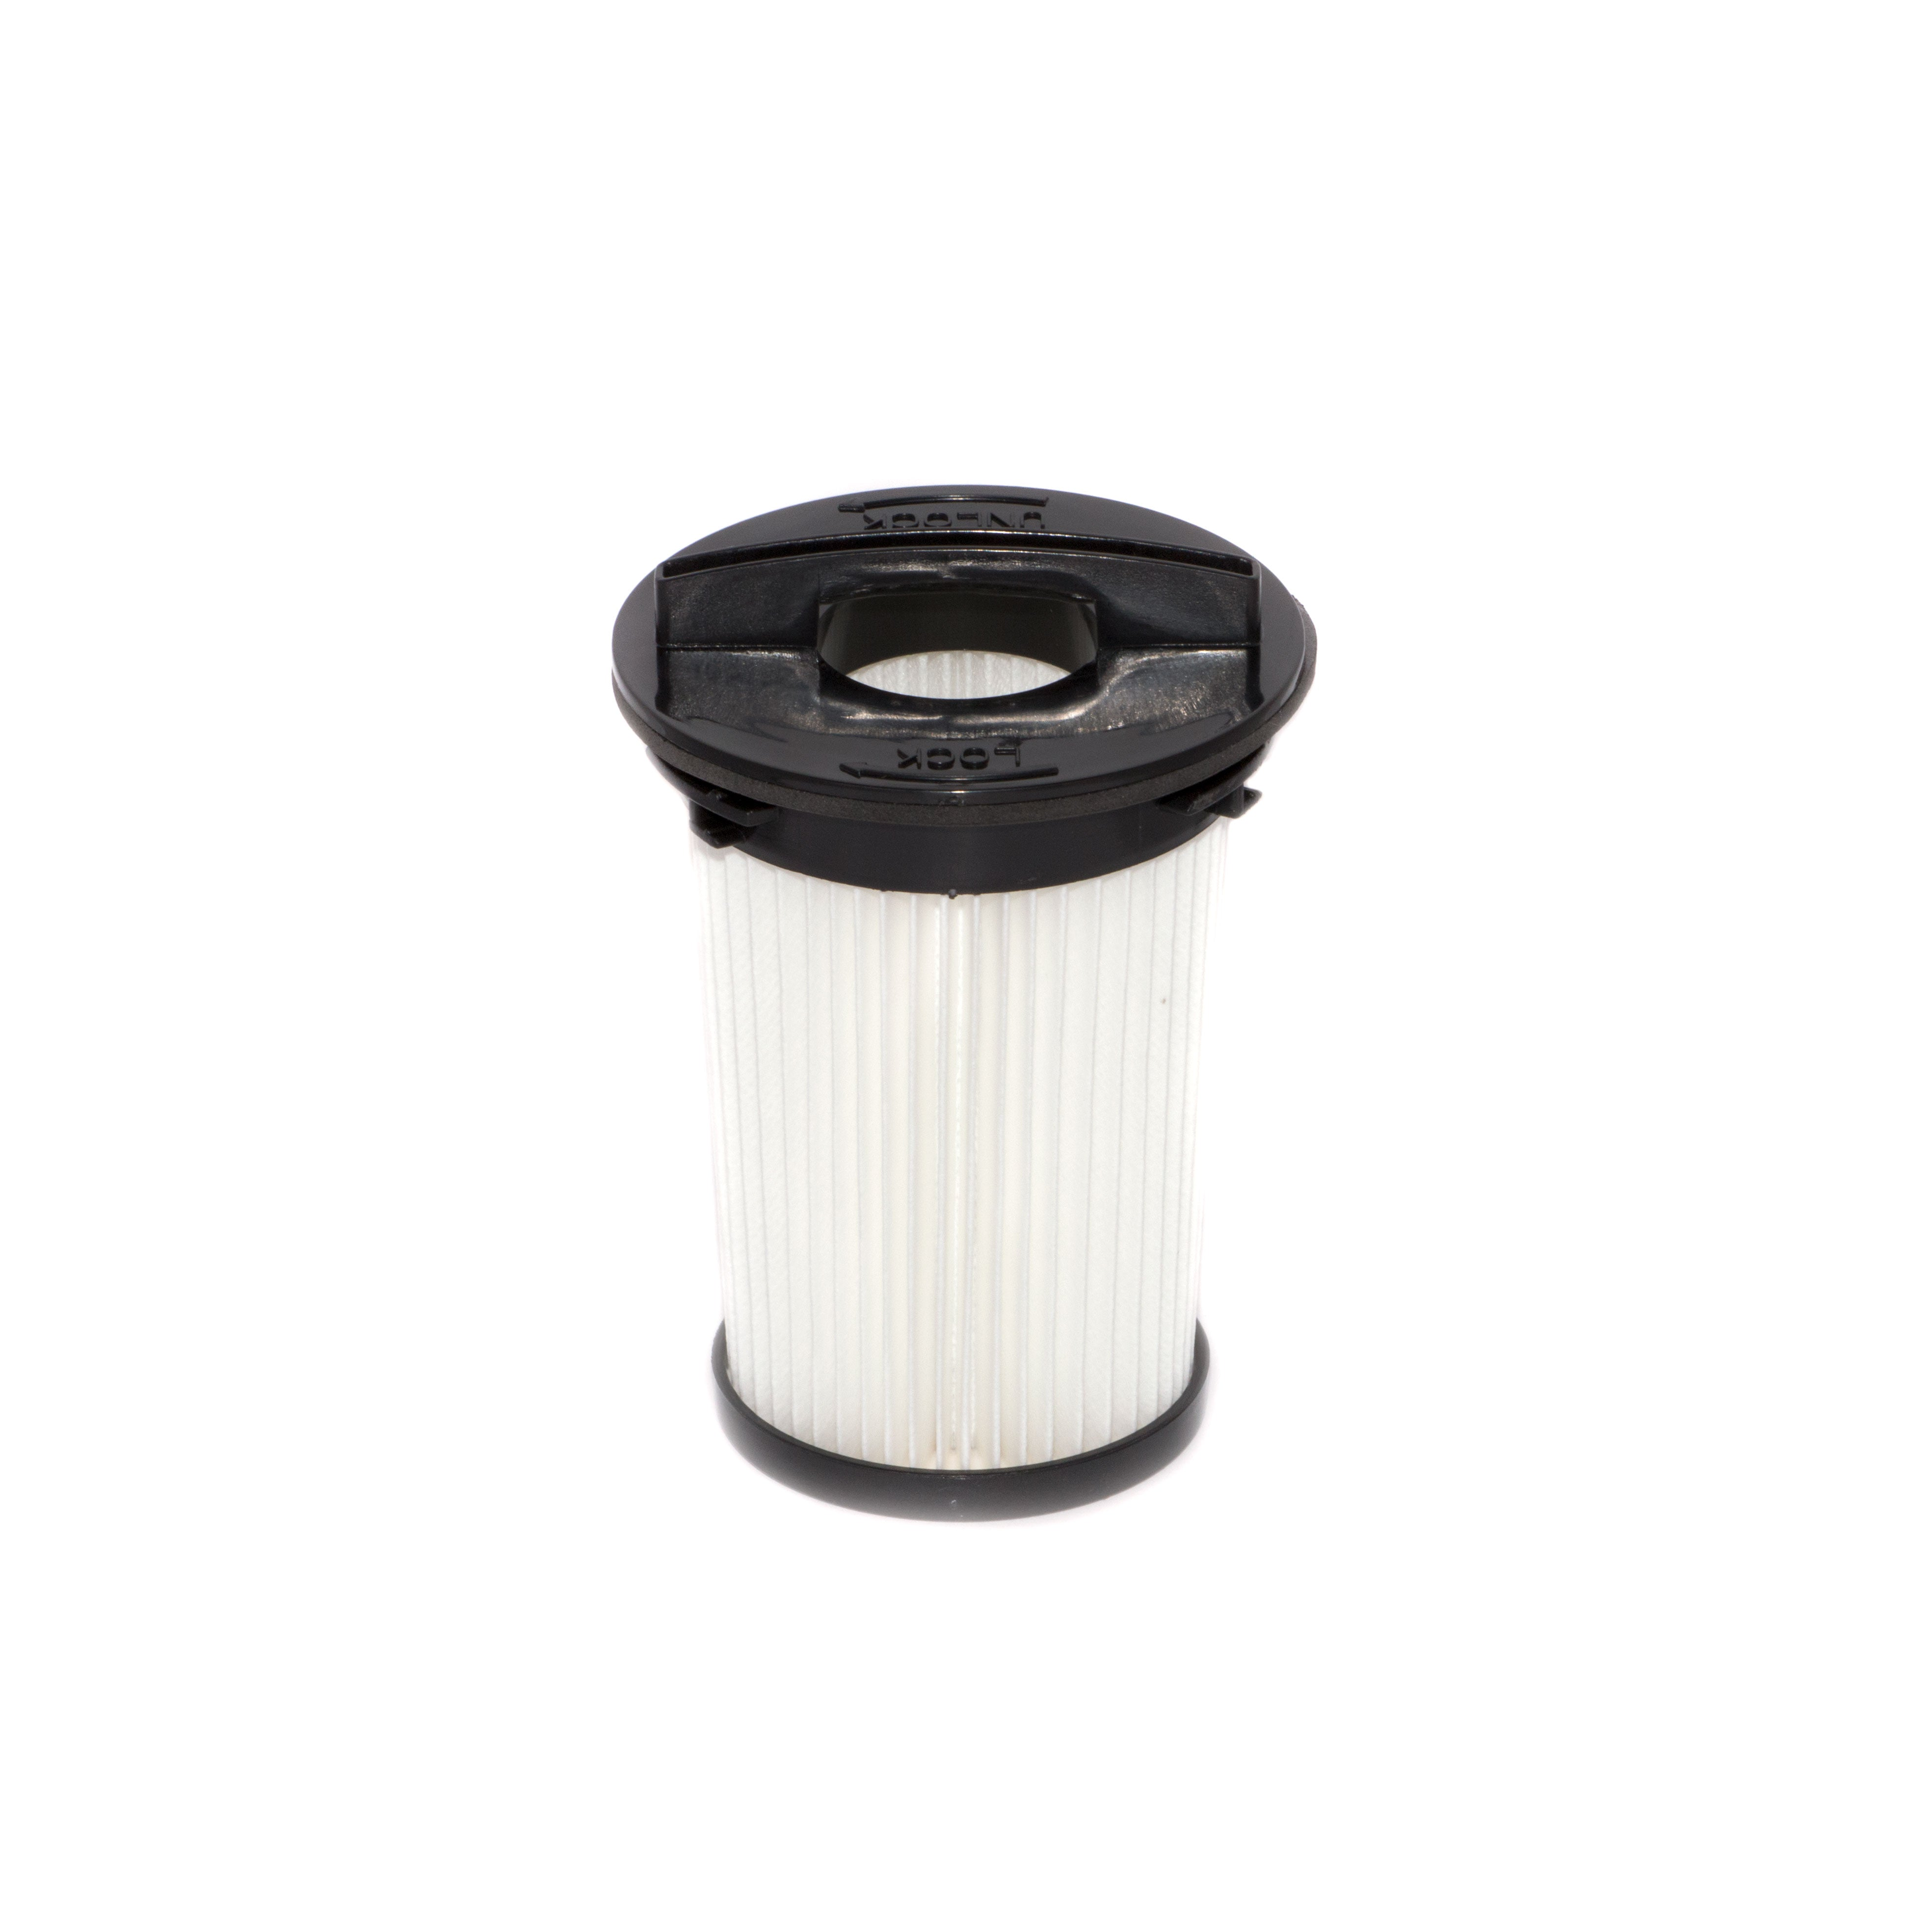 XR440008258 Royal Dirt Devil OEM HEPA Dust Cup Filter Type F95 for Express Lite Canister Vacuum Model SD40120